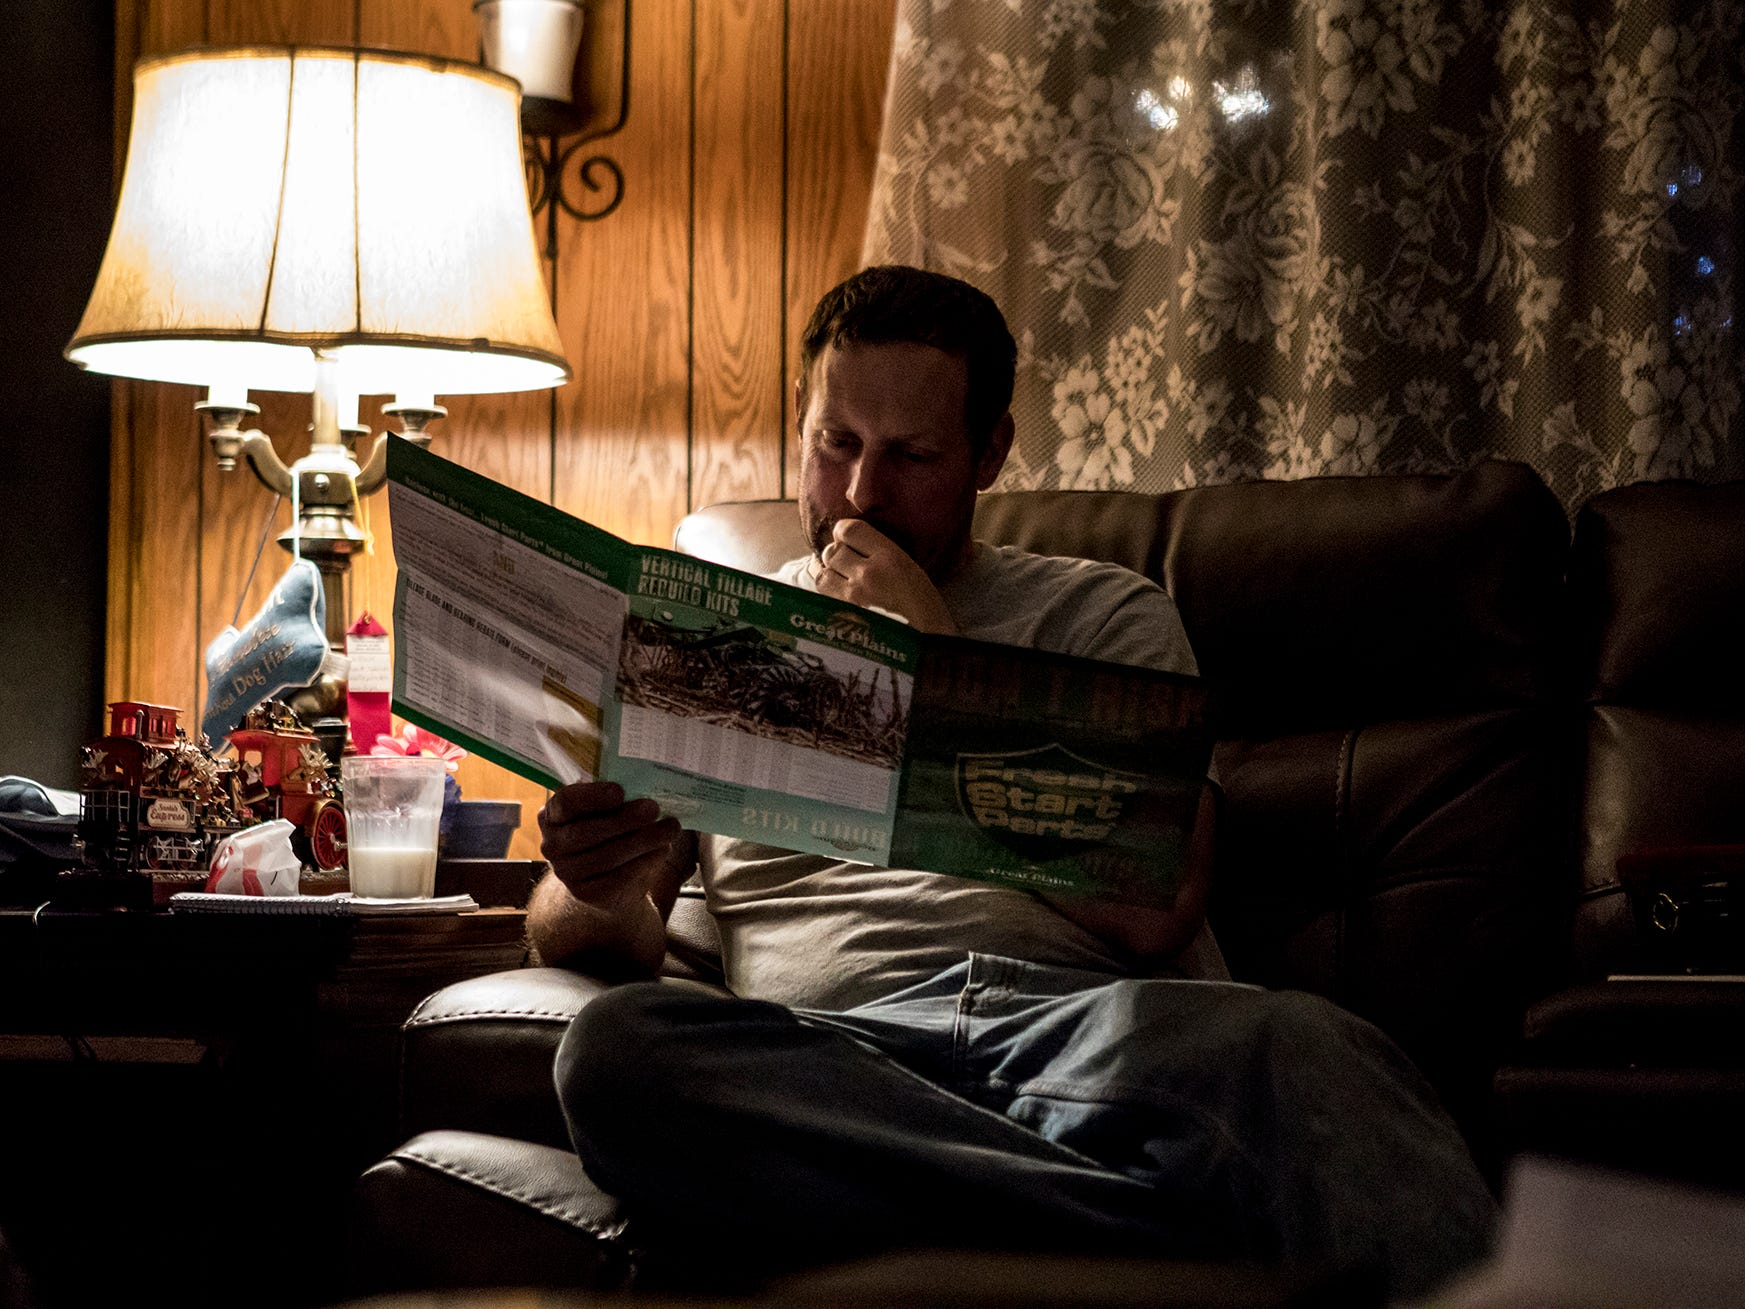 A day after finishing the harvest, Andy sits on his couch reading through newspapers with crop prices and a brochure with hay prices trying to decide if the family should invest in a new hay baler.